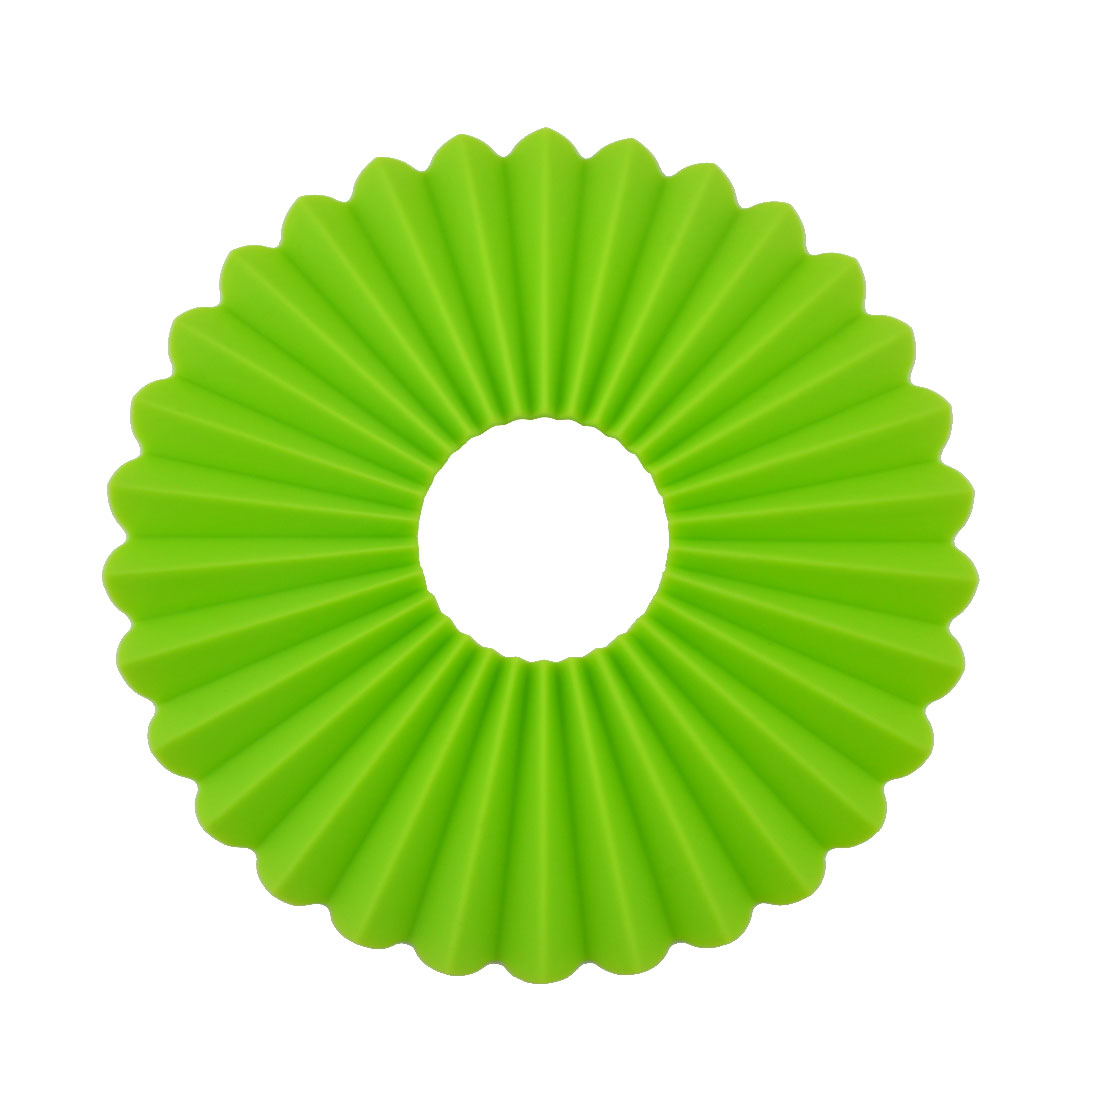 Silicone Plicated Multifunction Table Heat Resistant Mat Coaster Cushion Placemat Pad Green